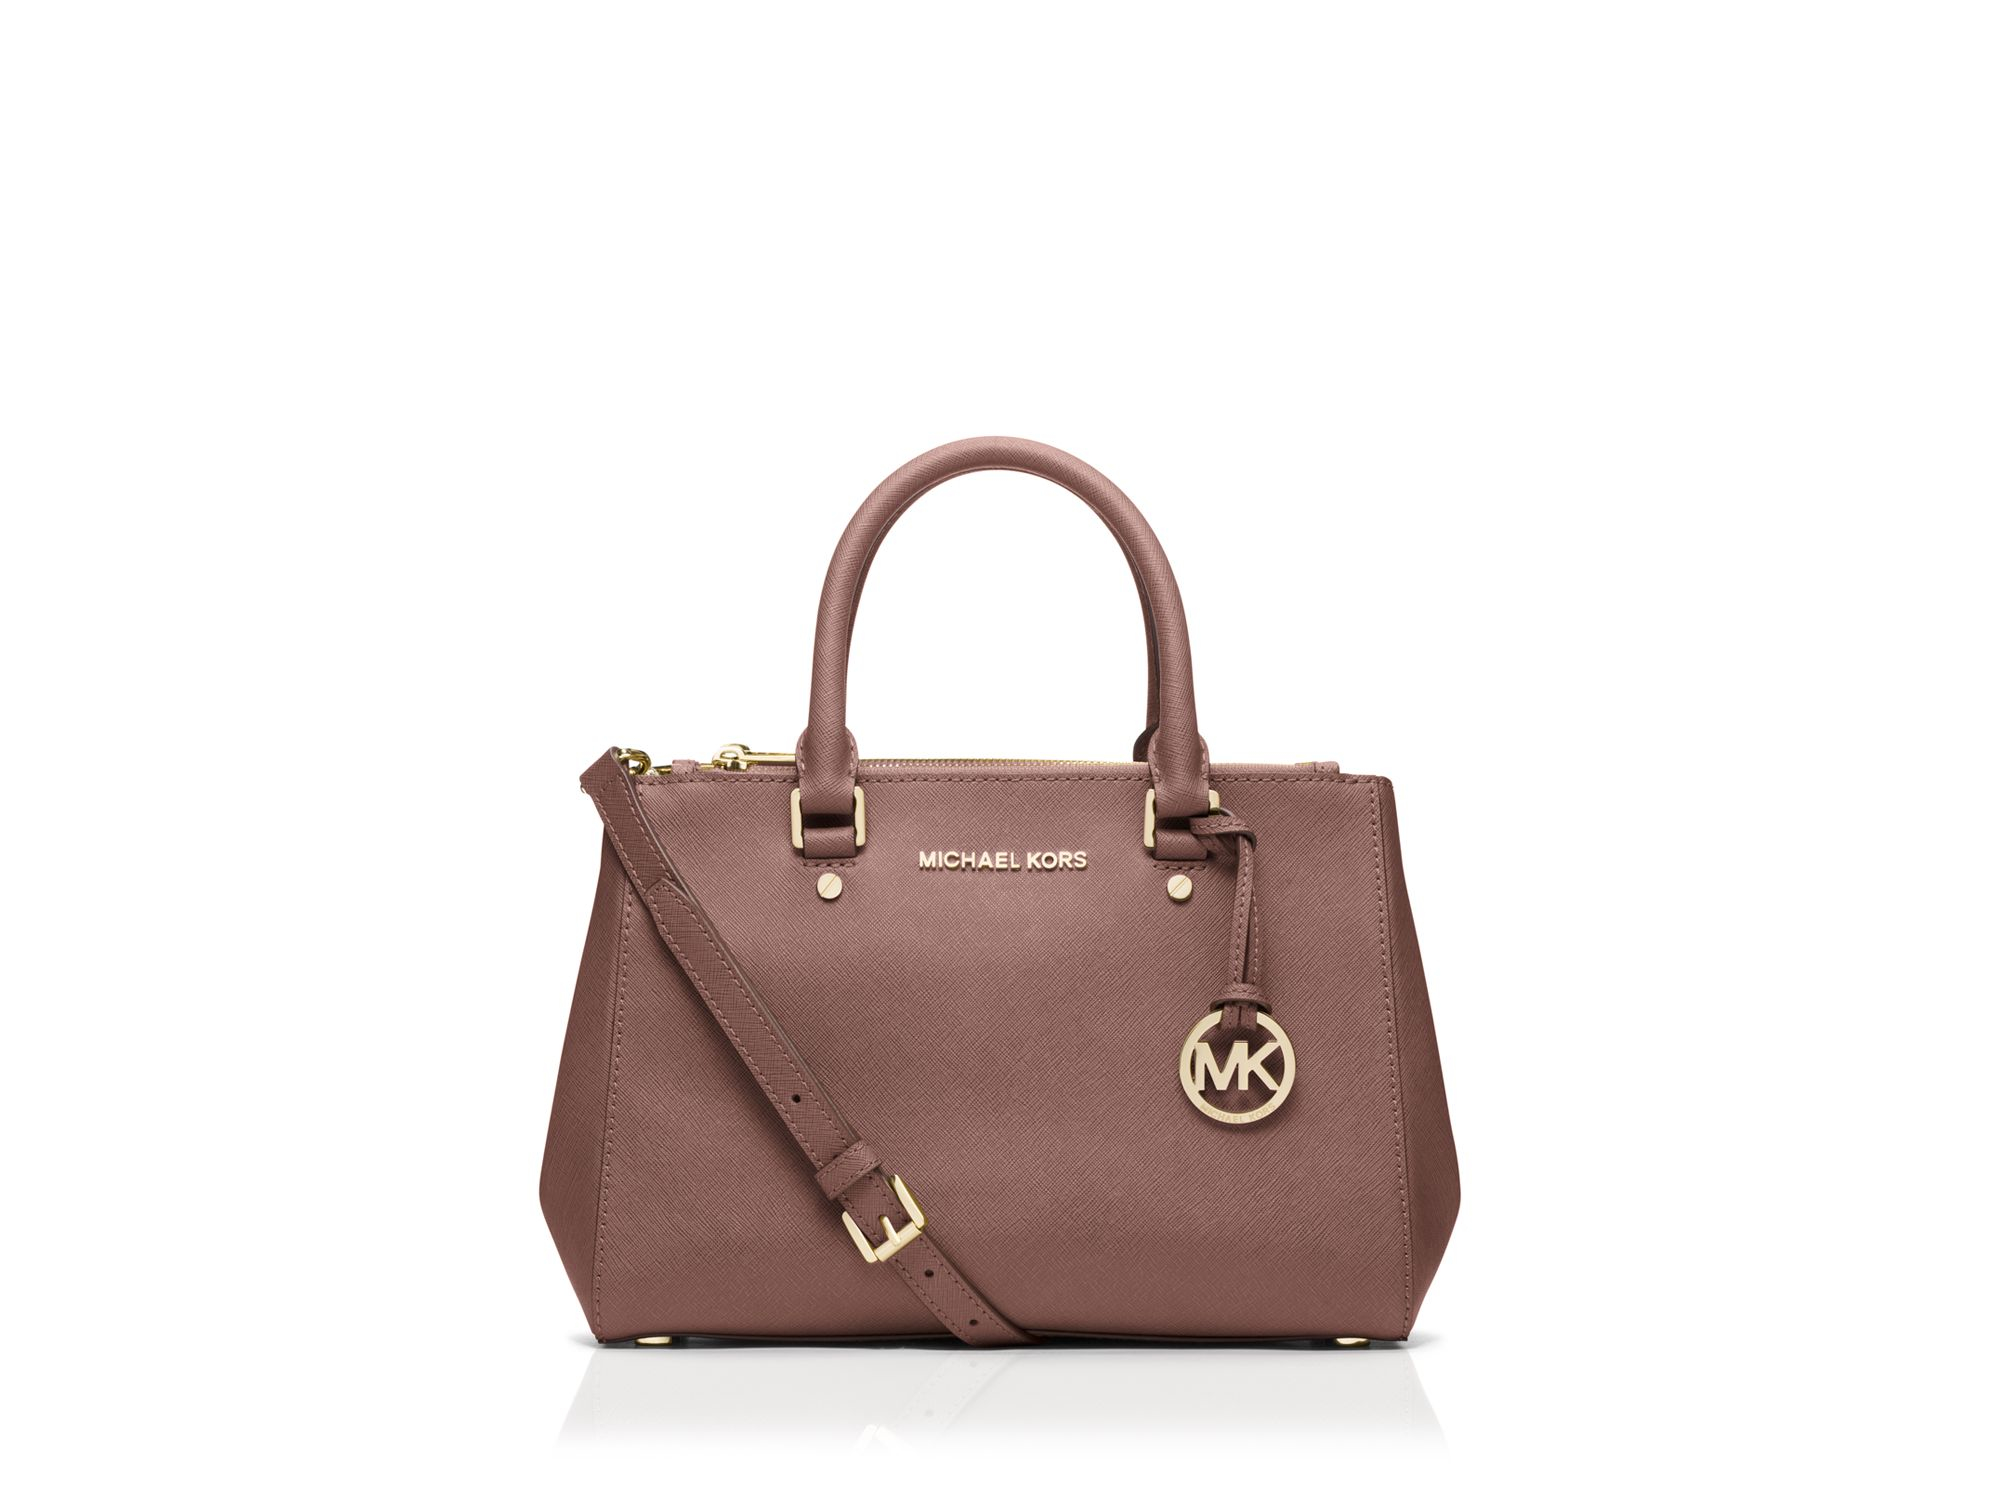 michael michael kors satchel small sutton in pink dusty rose lyst. Black Bedroom Furniture Sets. Home Design Ideas